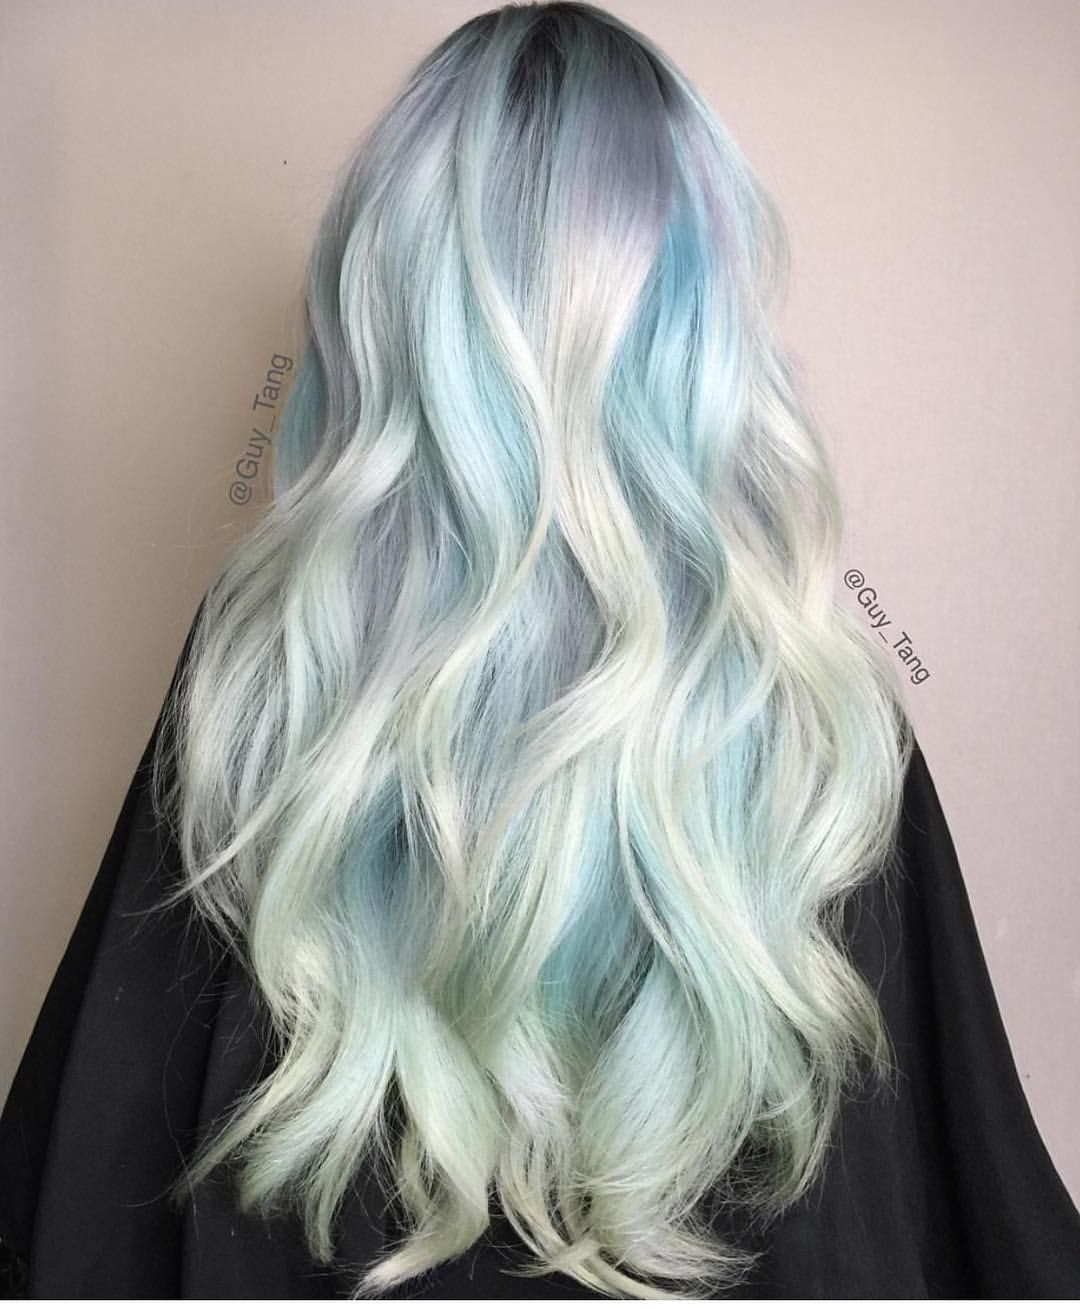 Cool boy hair dye frozen mint by guy tang  hair ideas  pinterest  guy tang guy and